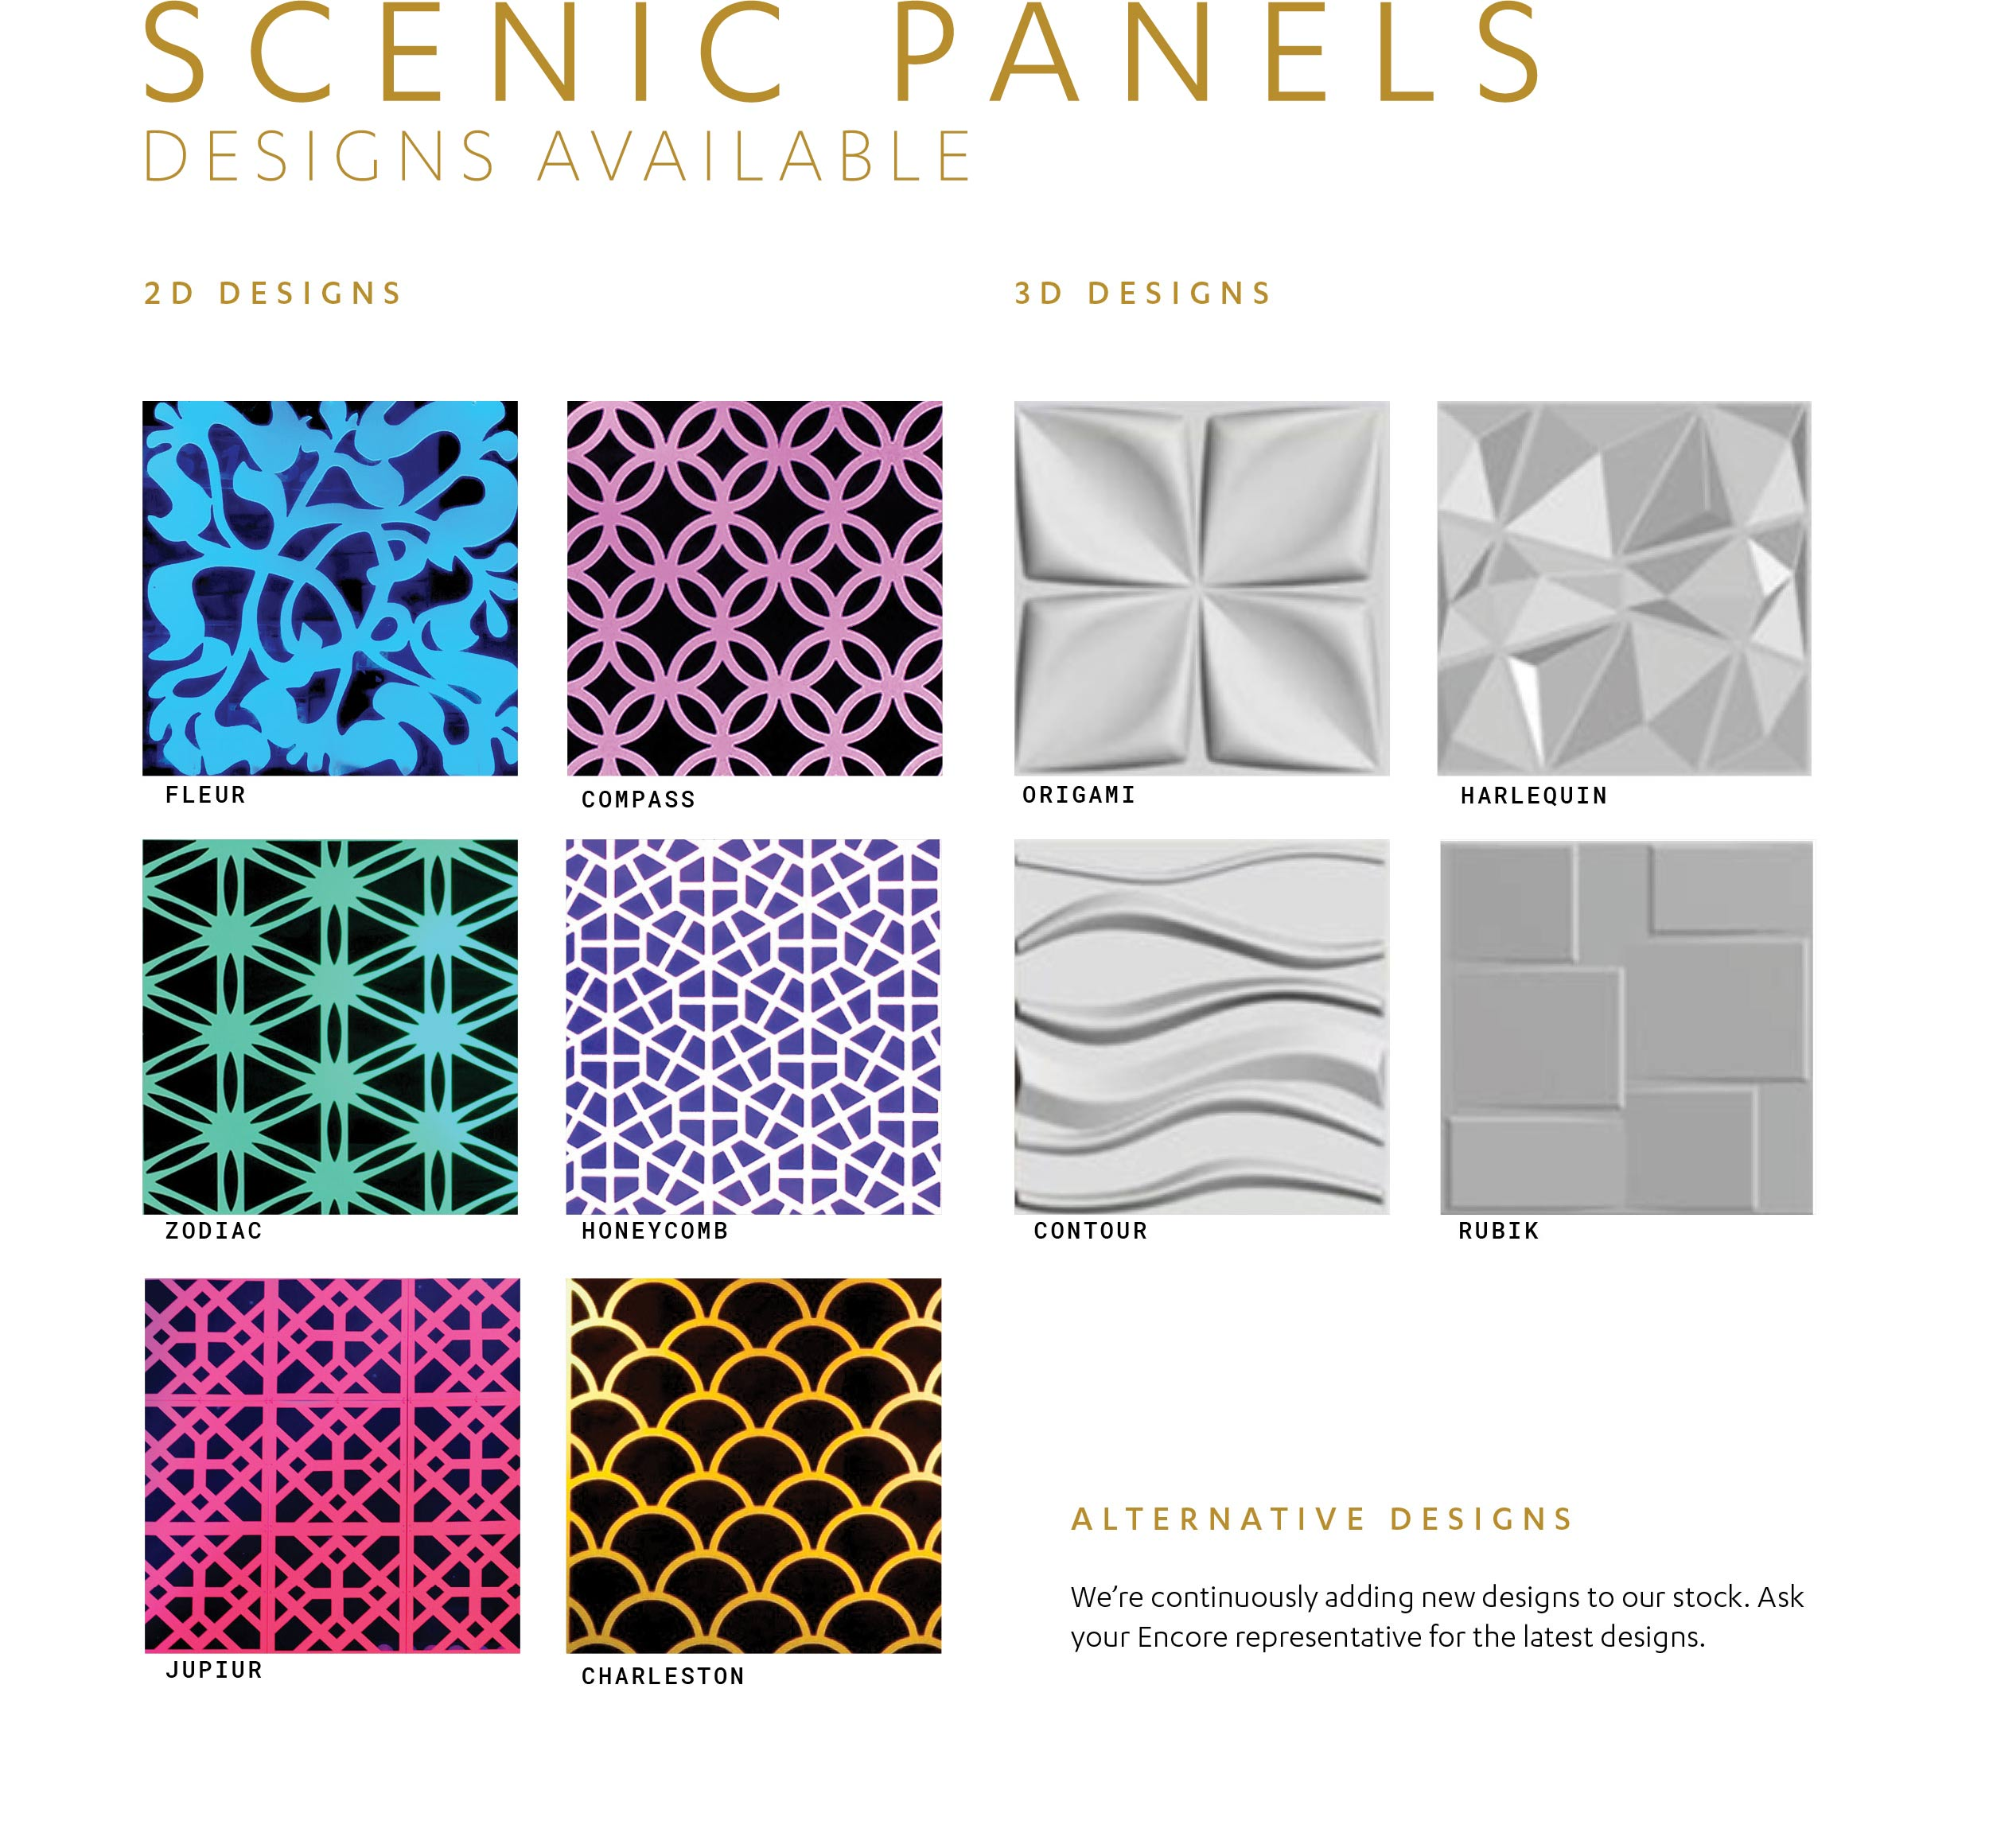 Encore-Scenic-panels-Designs